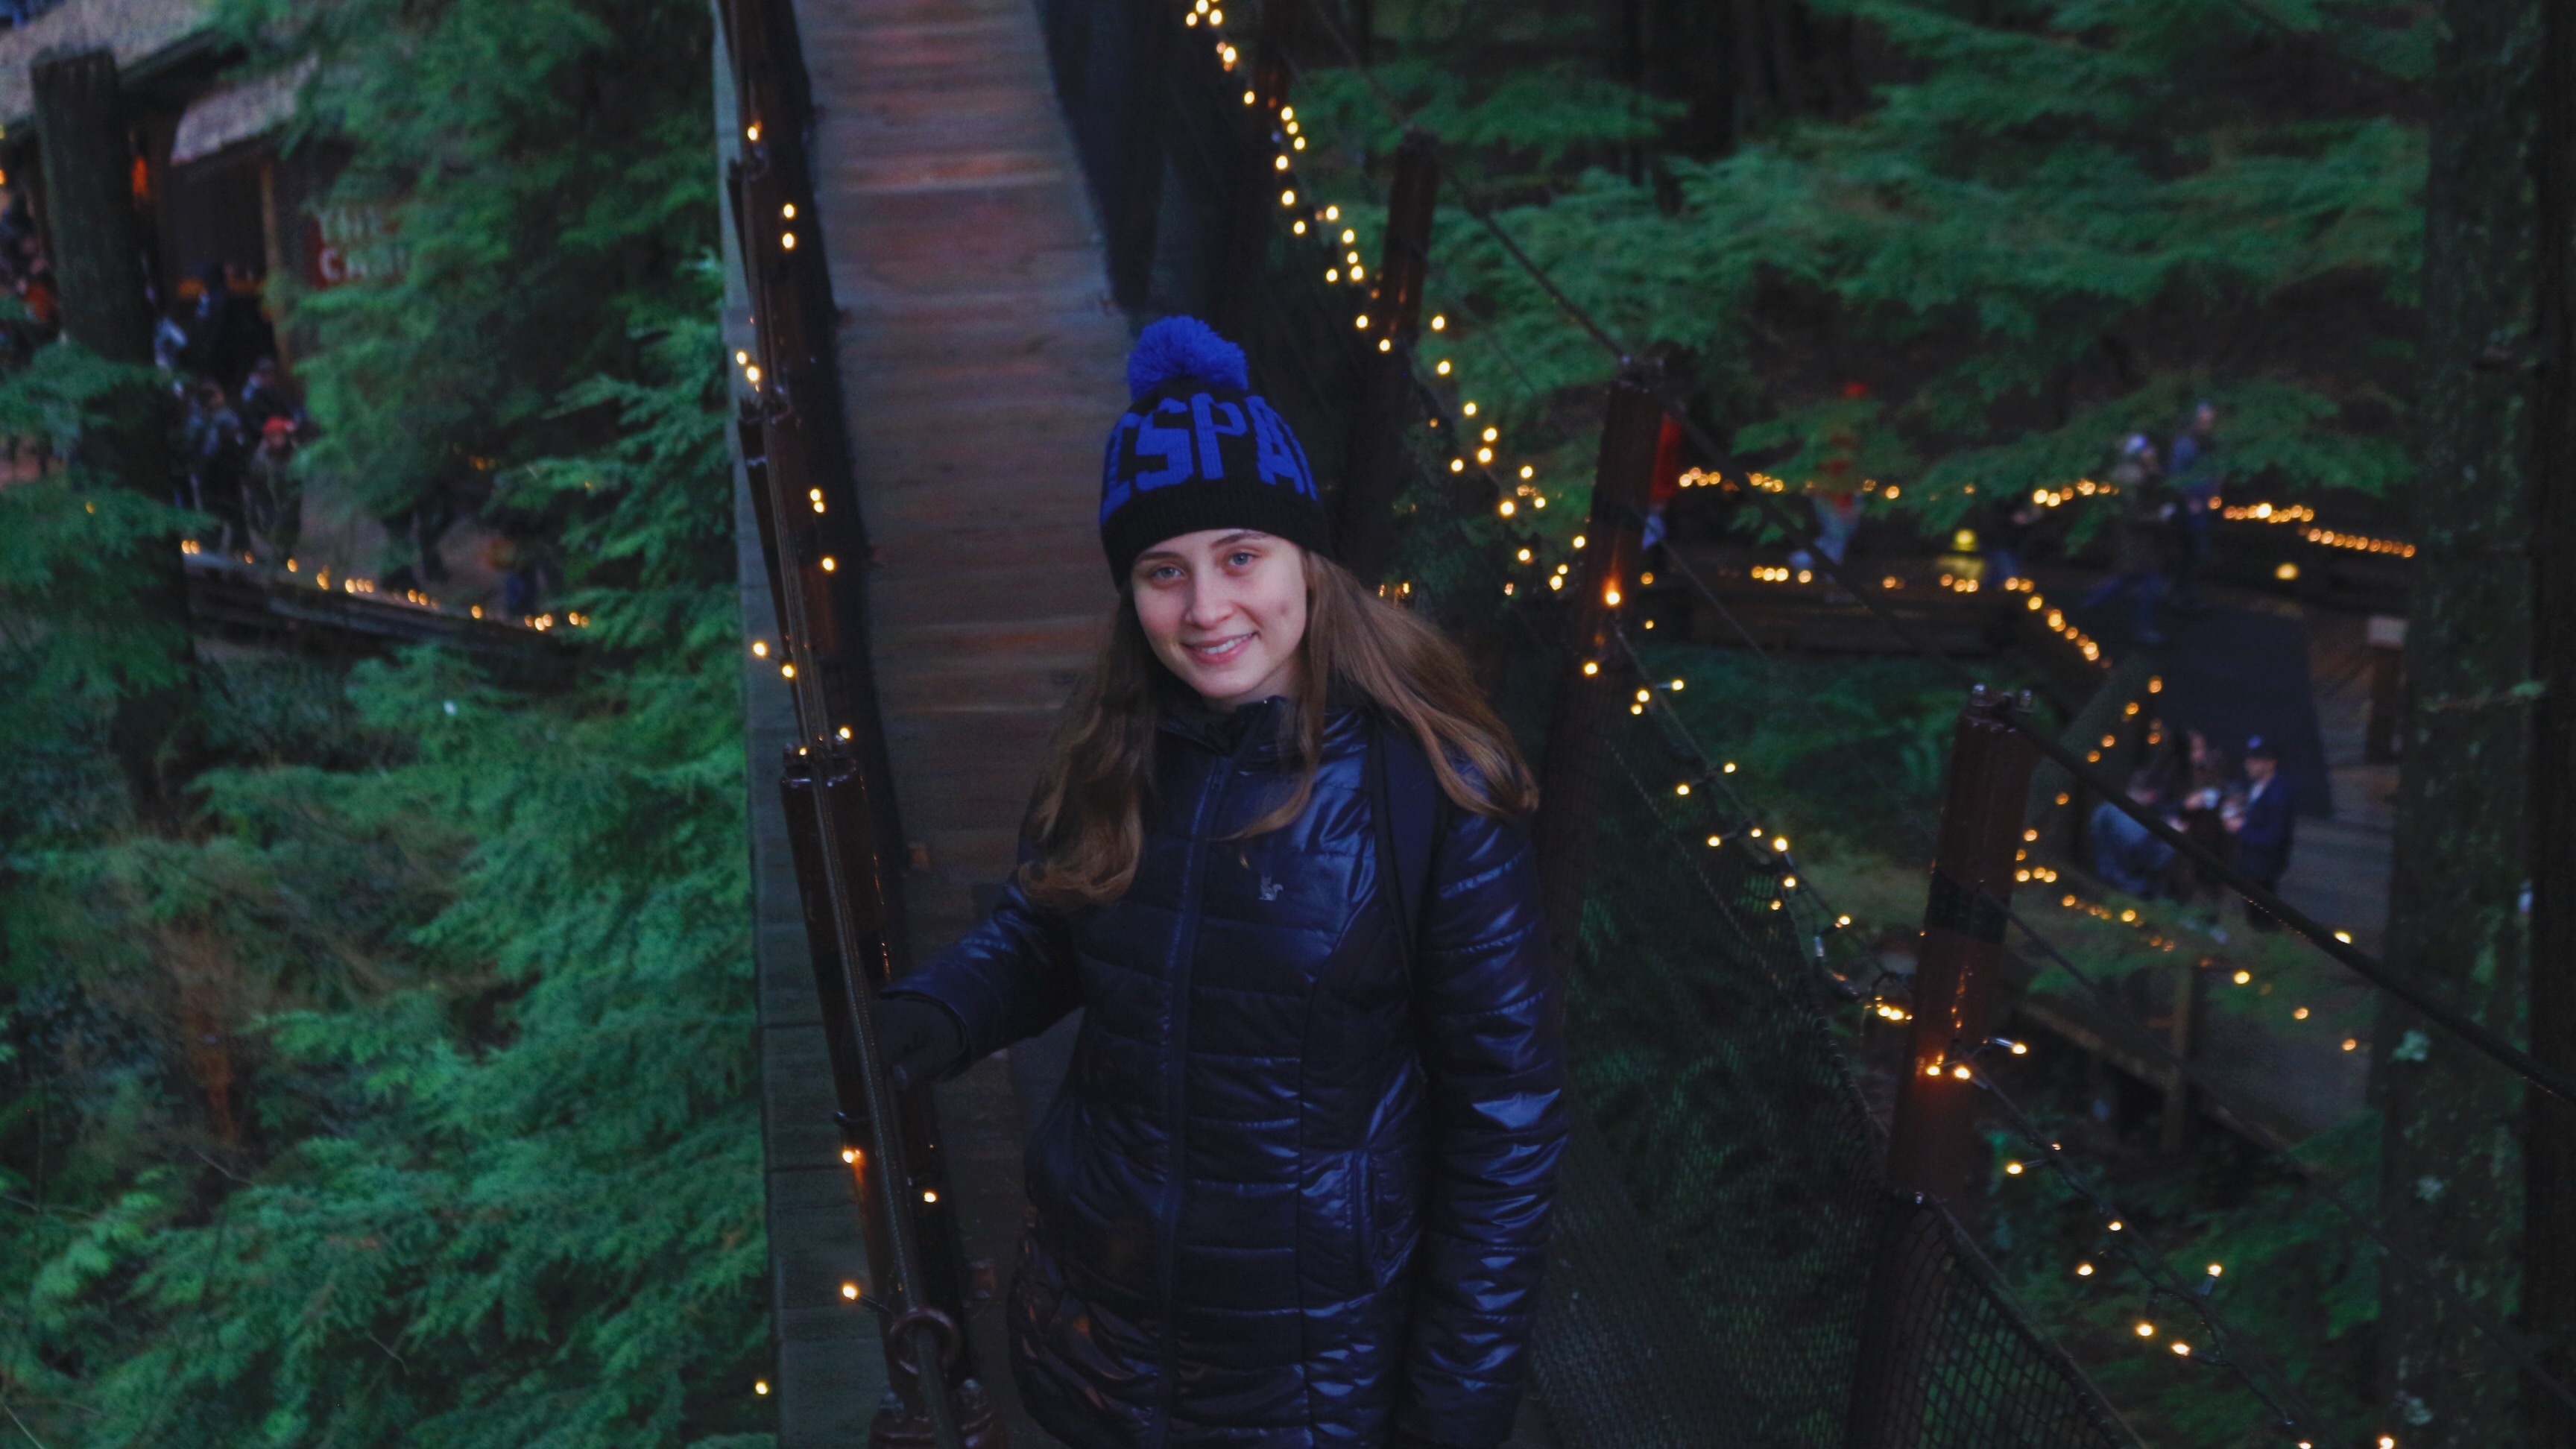 Capilano suspension bridge park